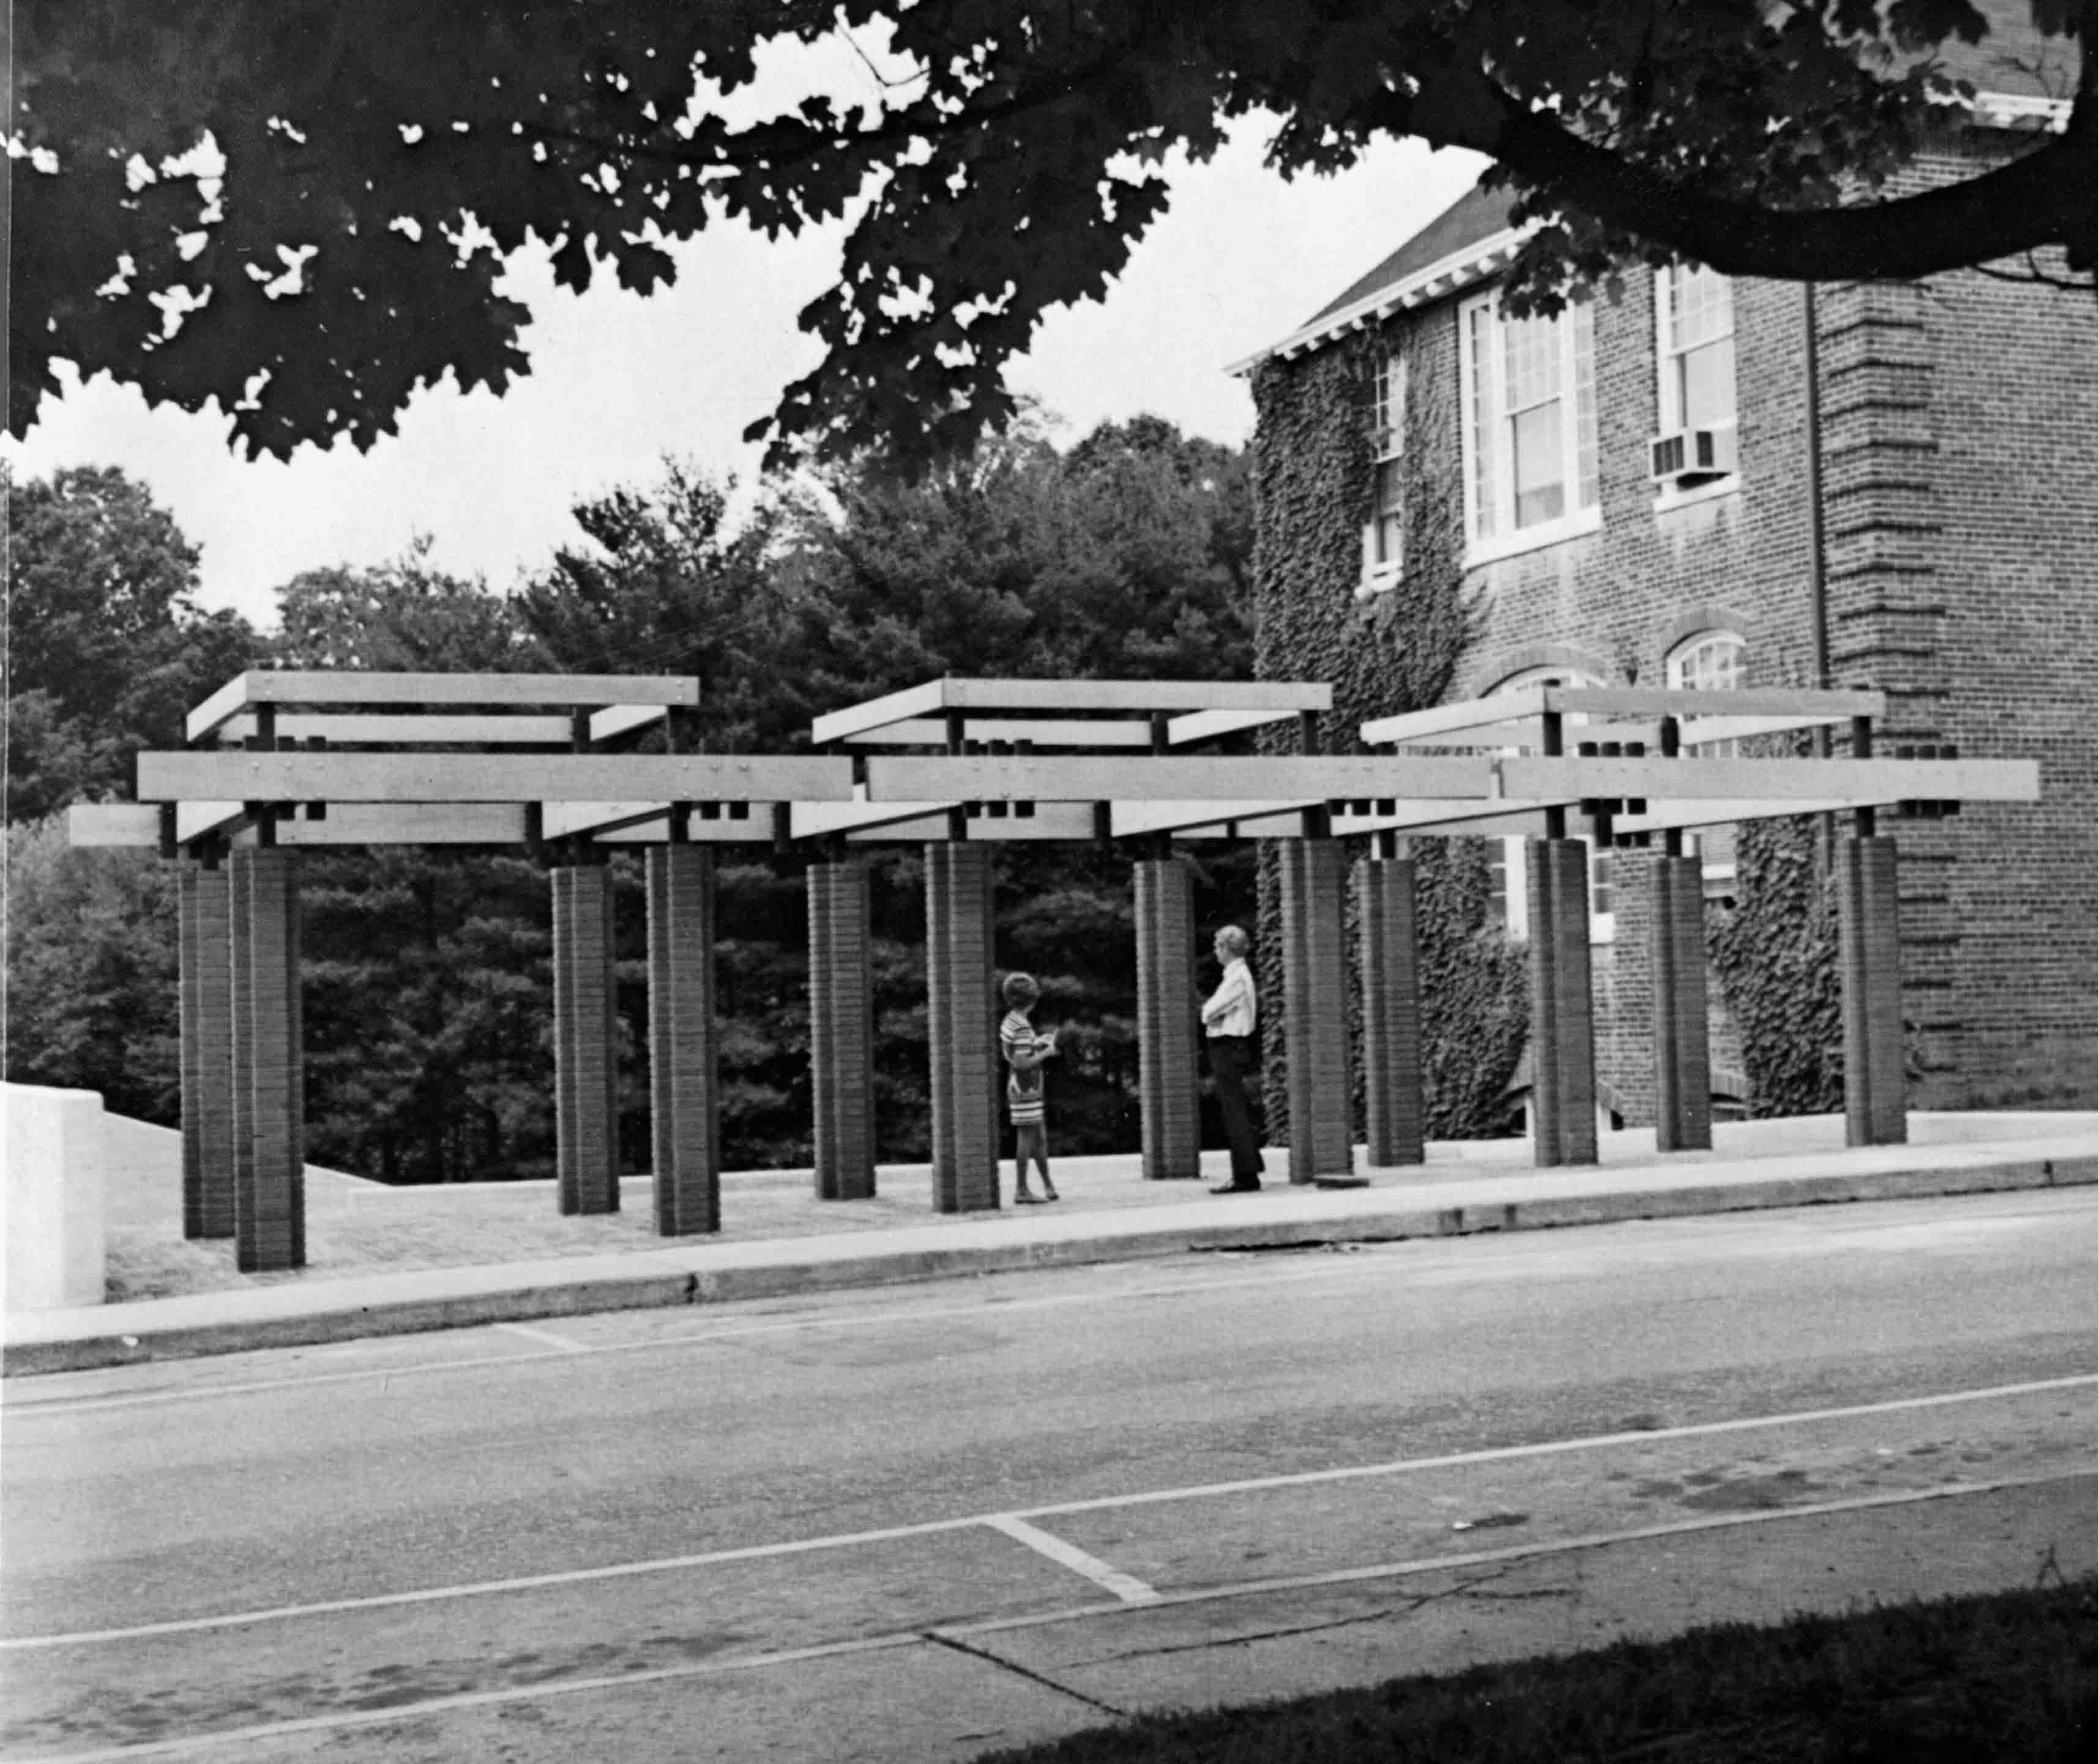 Entrance to the Anderson Amphitheater, 1975.